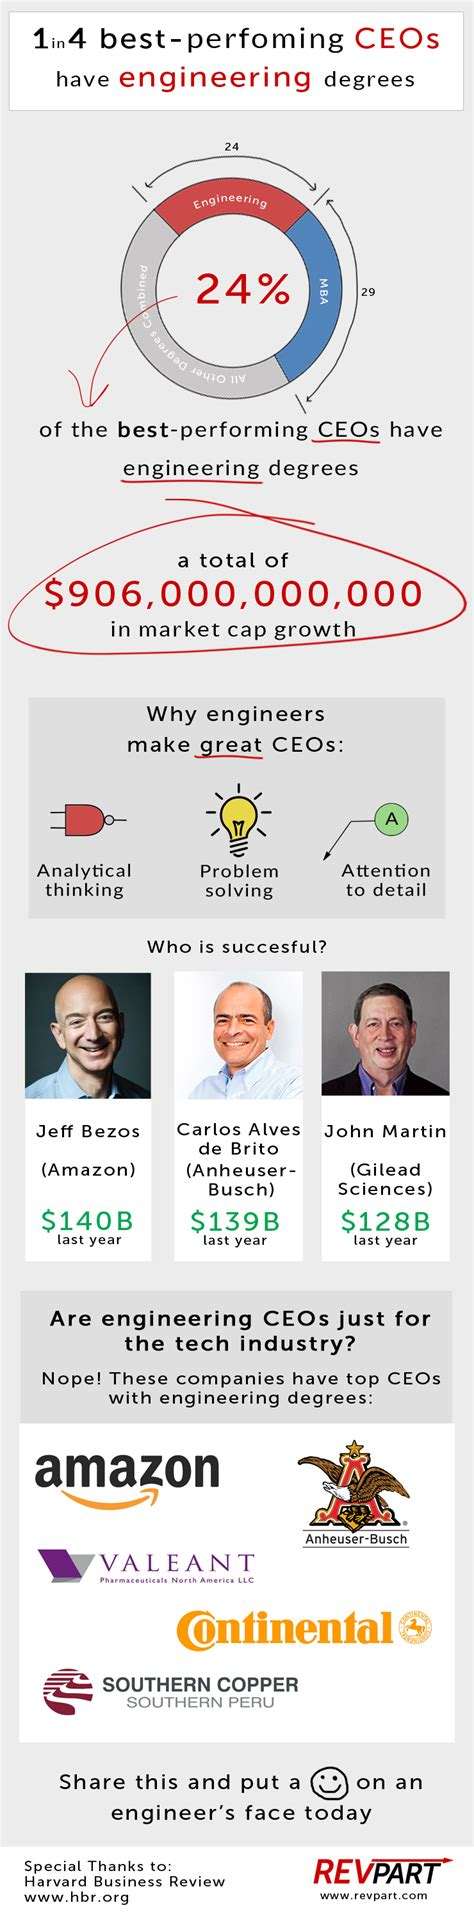 Ceos Without Mba Degree by Why Engineers Make The Best Ceos Infographic Revpart